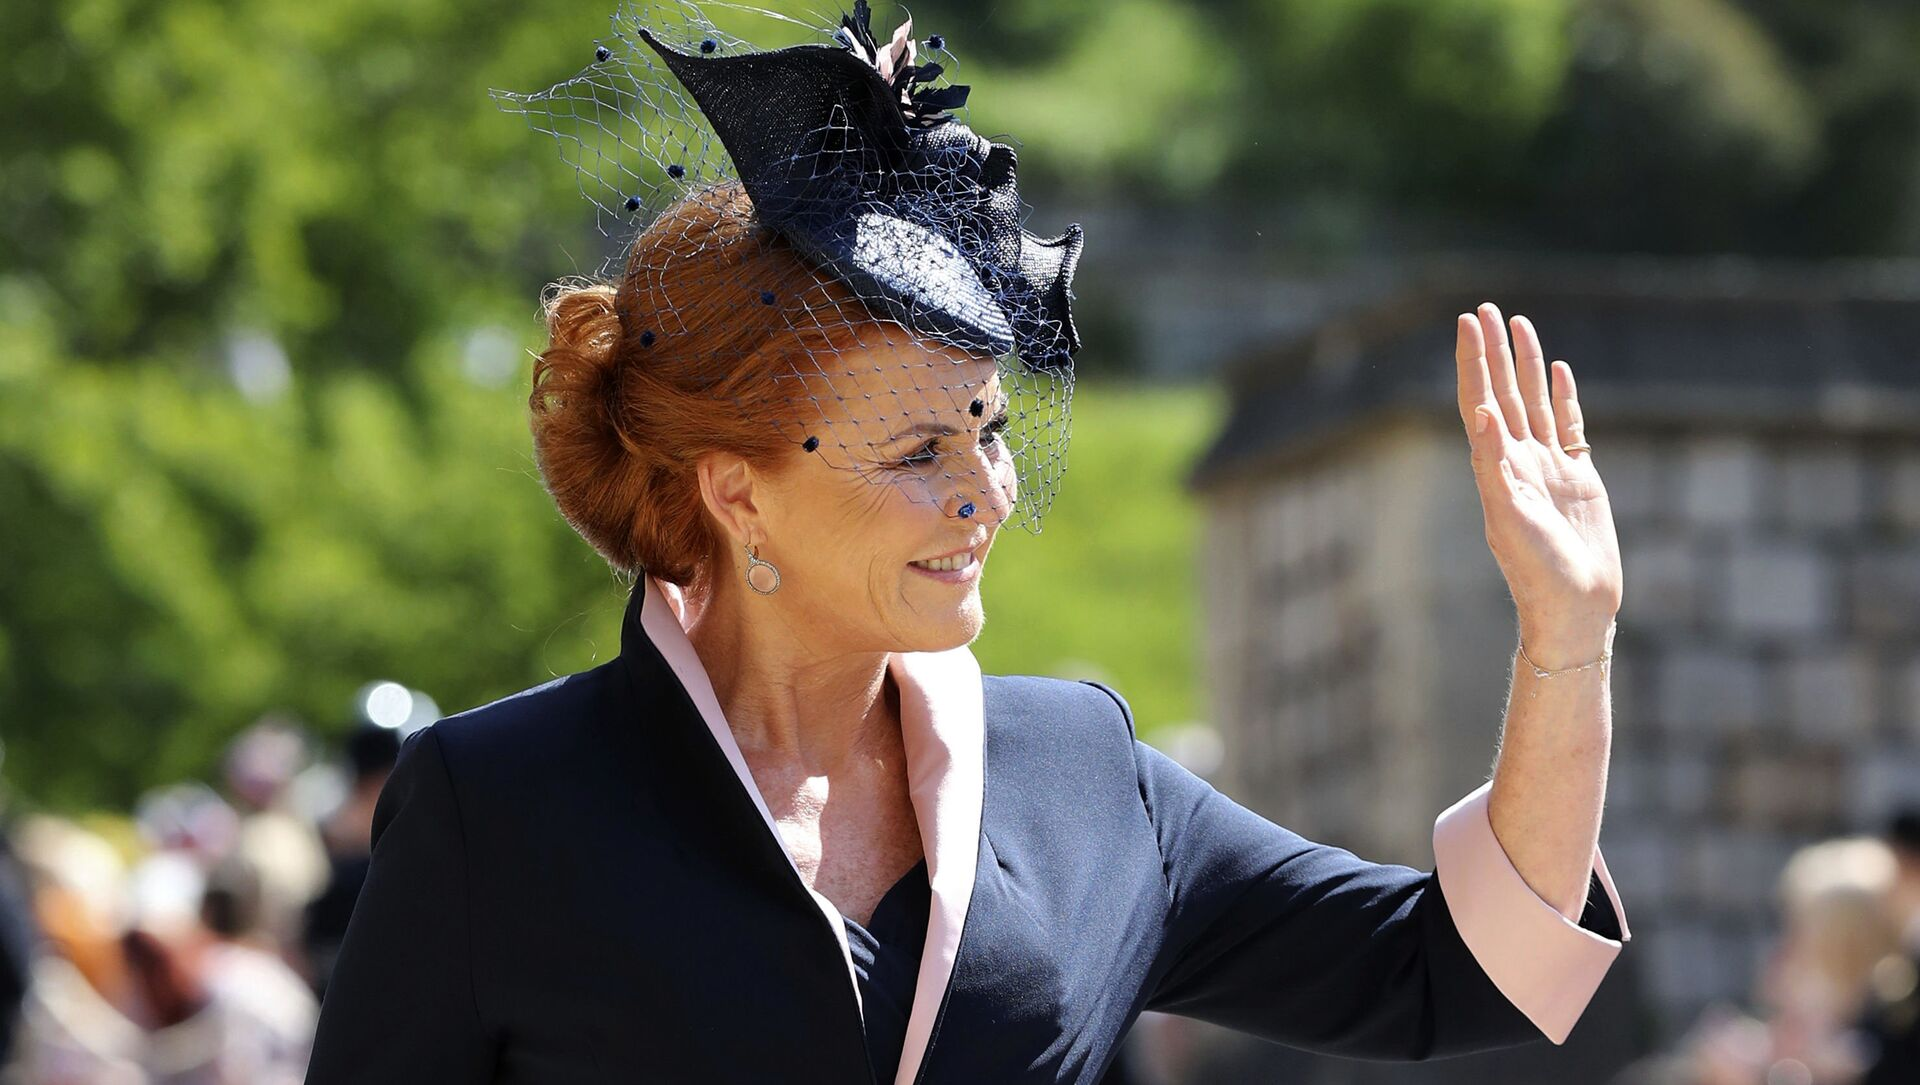 Sarah Ferguson arrives for the wedding ceremony of Prince Harry and Meghan Markle at St. George's Chapel in Windsor Castle in Windsor, near London, England, Saturday, May 19, 2018 - Sputnik International, 1920, 03.08.2021